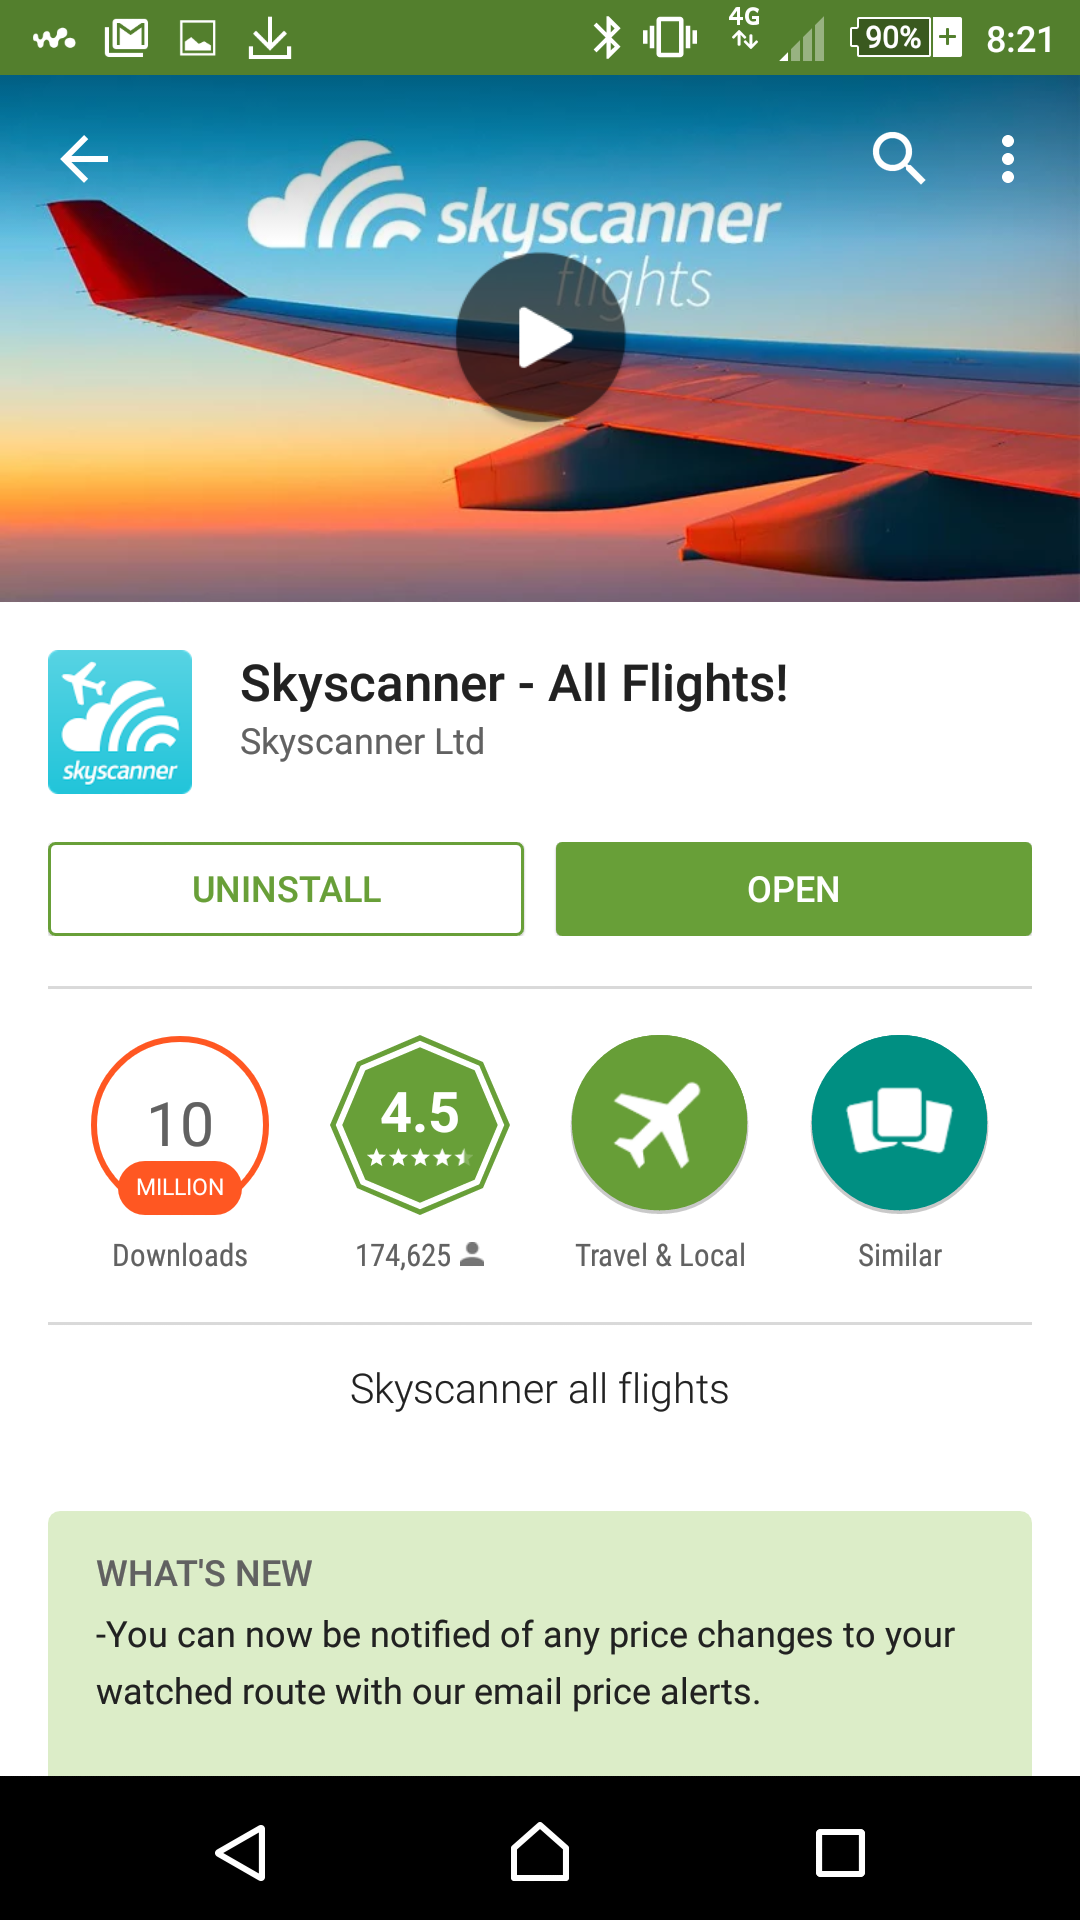 Skyscanner, who are they and what do they do?